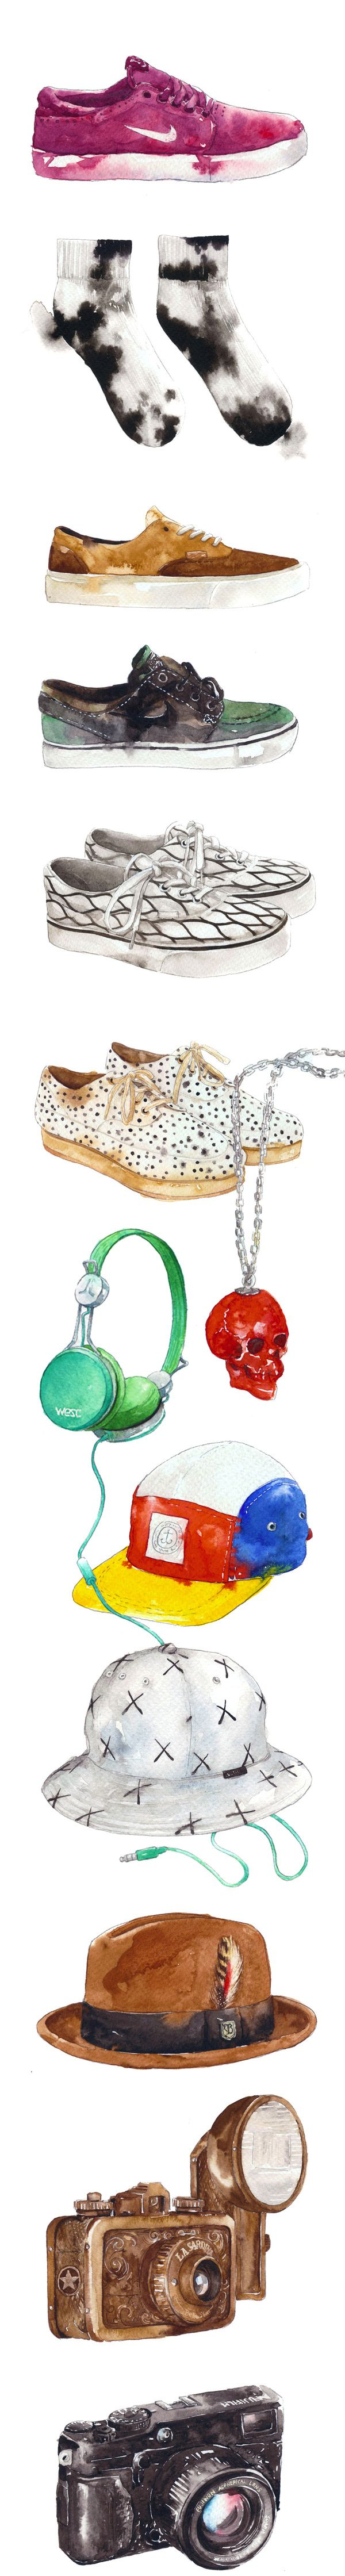 Top to Toe - Product drawings  | Bitchslap Magazine by Eunike Nugroho, via Behance